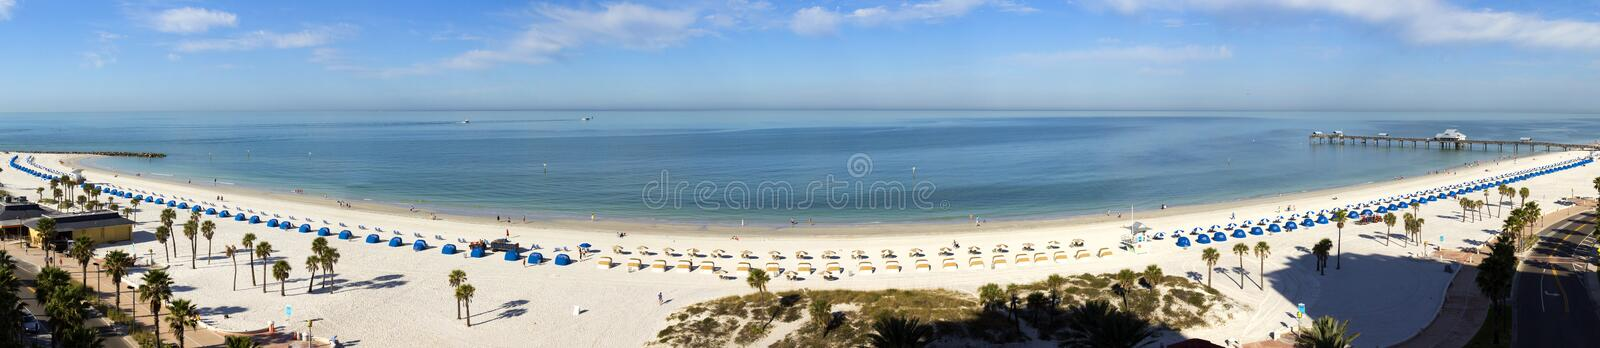 Breed Panorama van Clearwater-Strandtoevlucht in Florida stock afbeelding